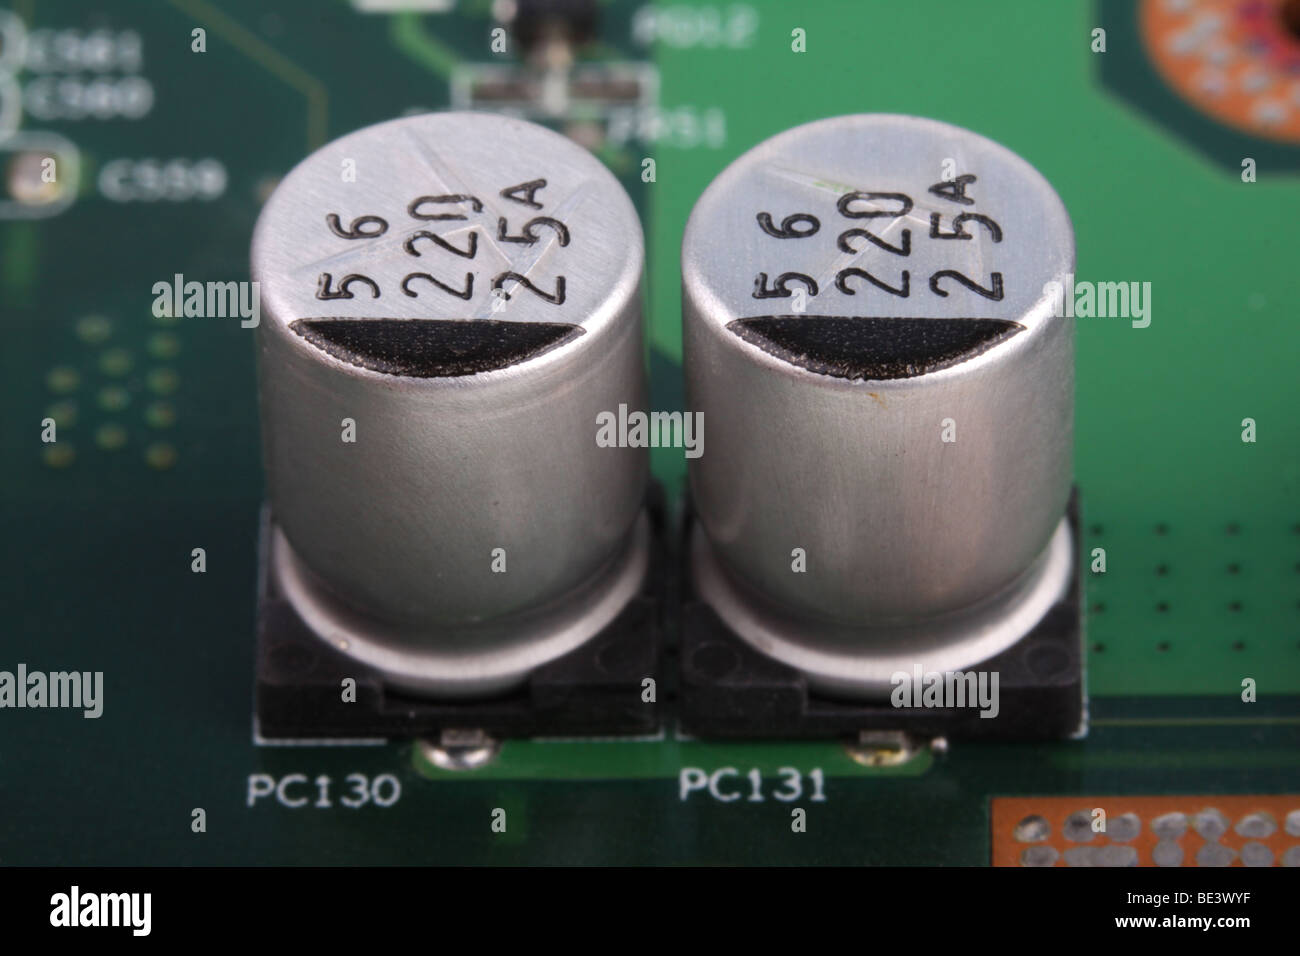 Motherboard capacitors on a macro view with shallow depth of field. - Stock Image